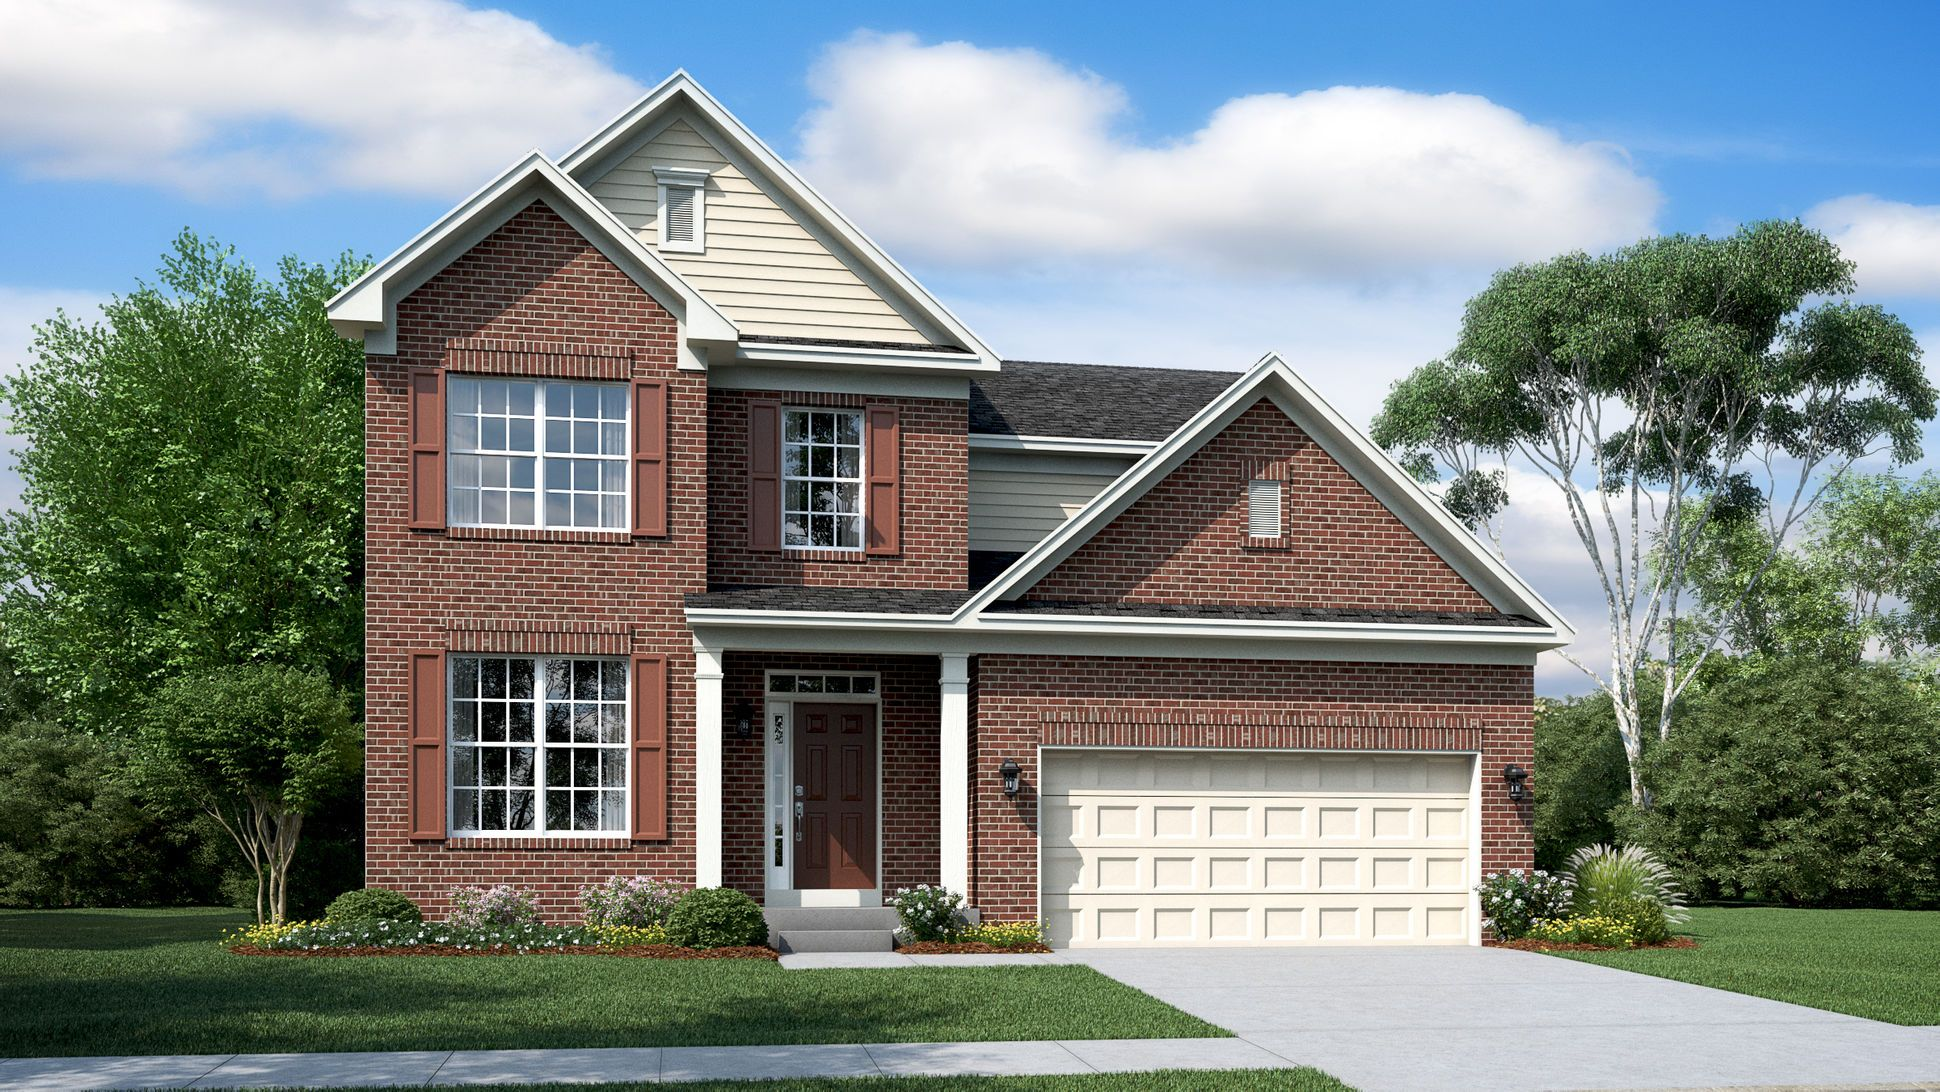 Single Family Homes For Rent Near Me Apartmentsforrent Housesforsale Renttoownhomes Apartmentguid Rental Homes Near Me Rent To Own Homes Townhouse For Rent